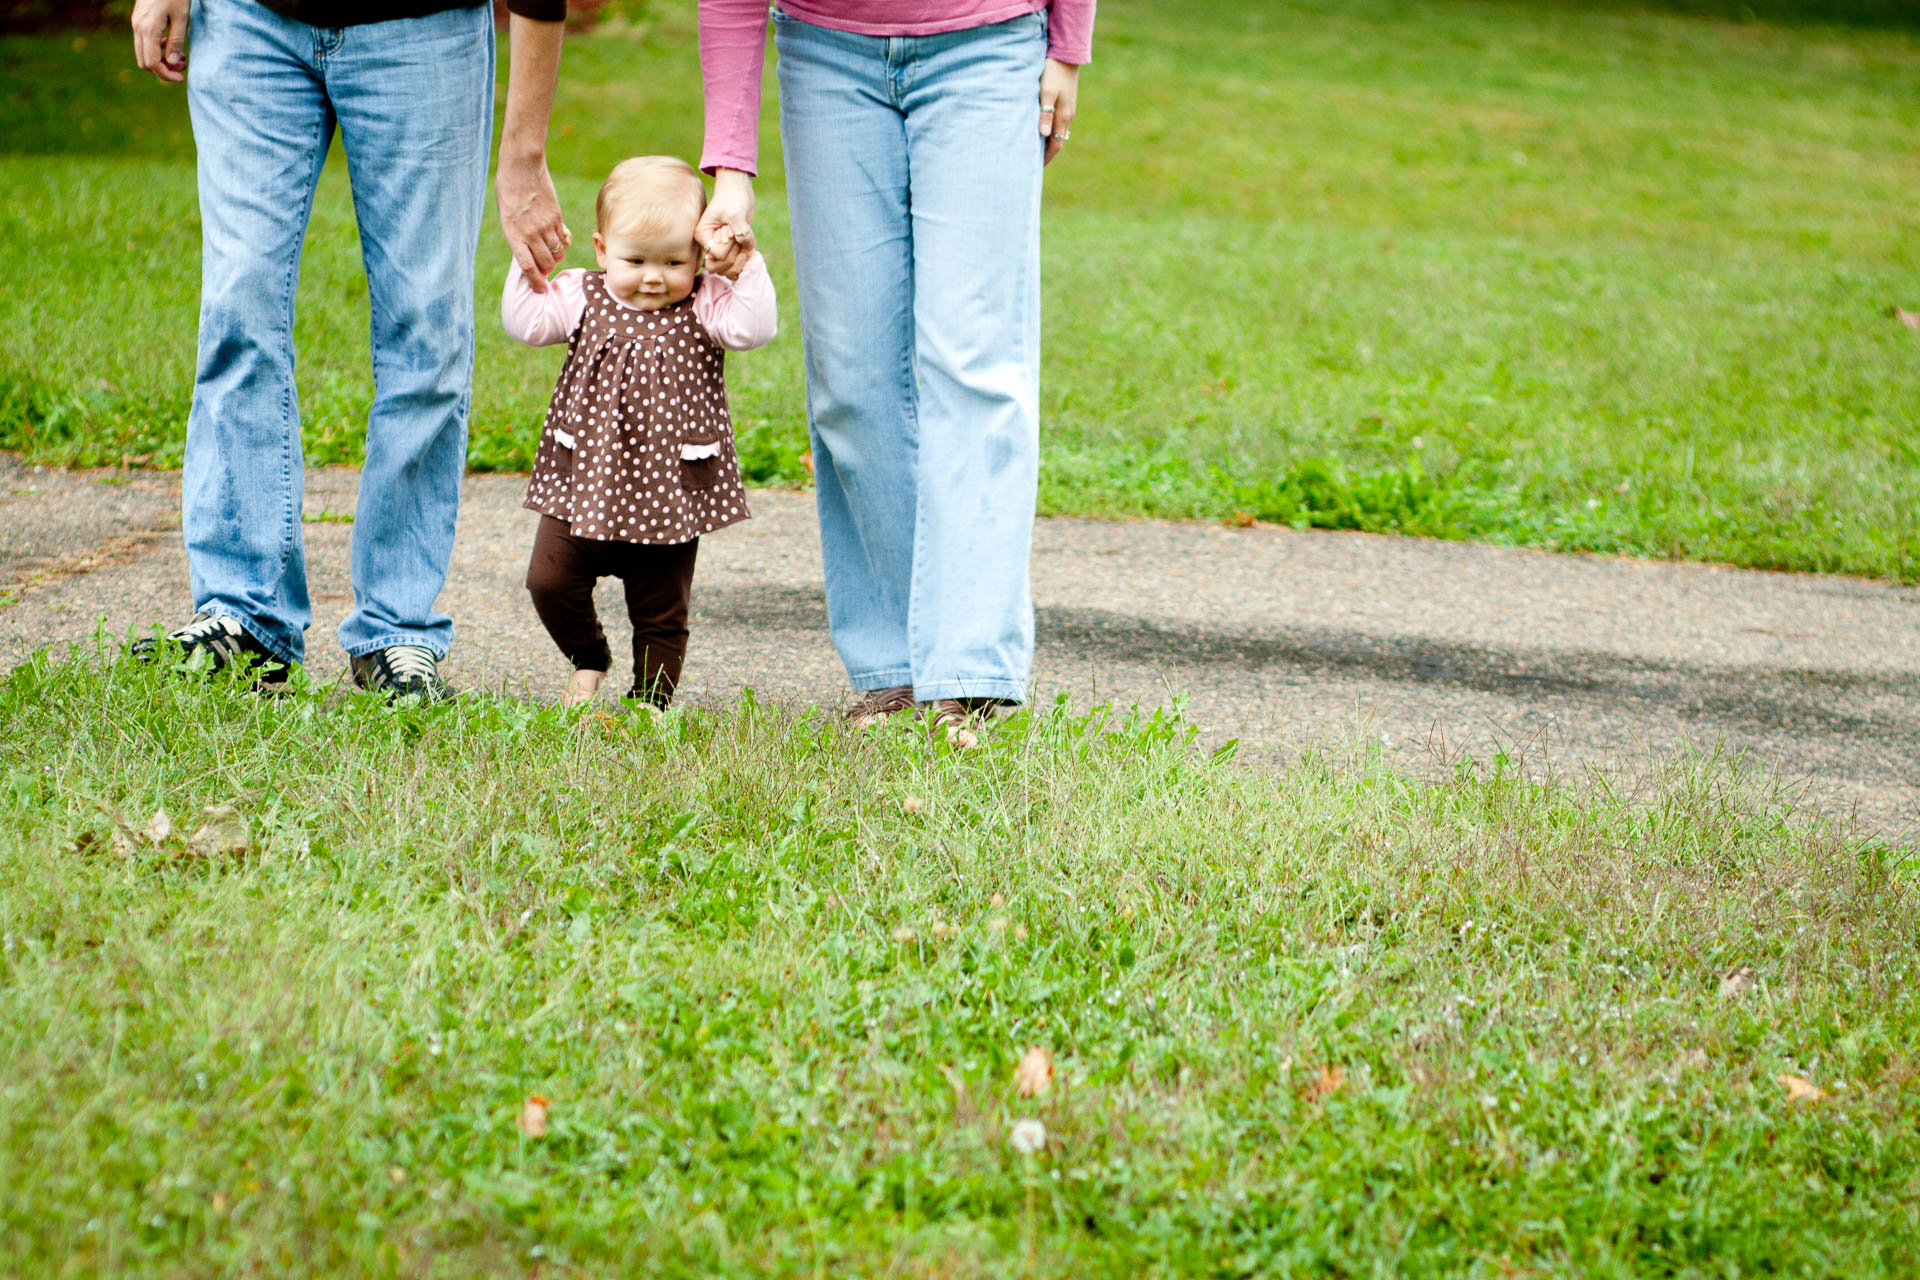 Toddler walking with mom and dad